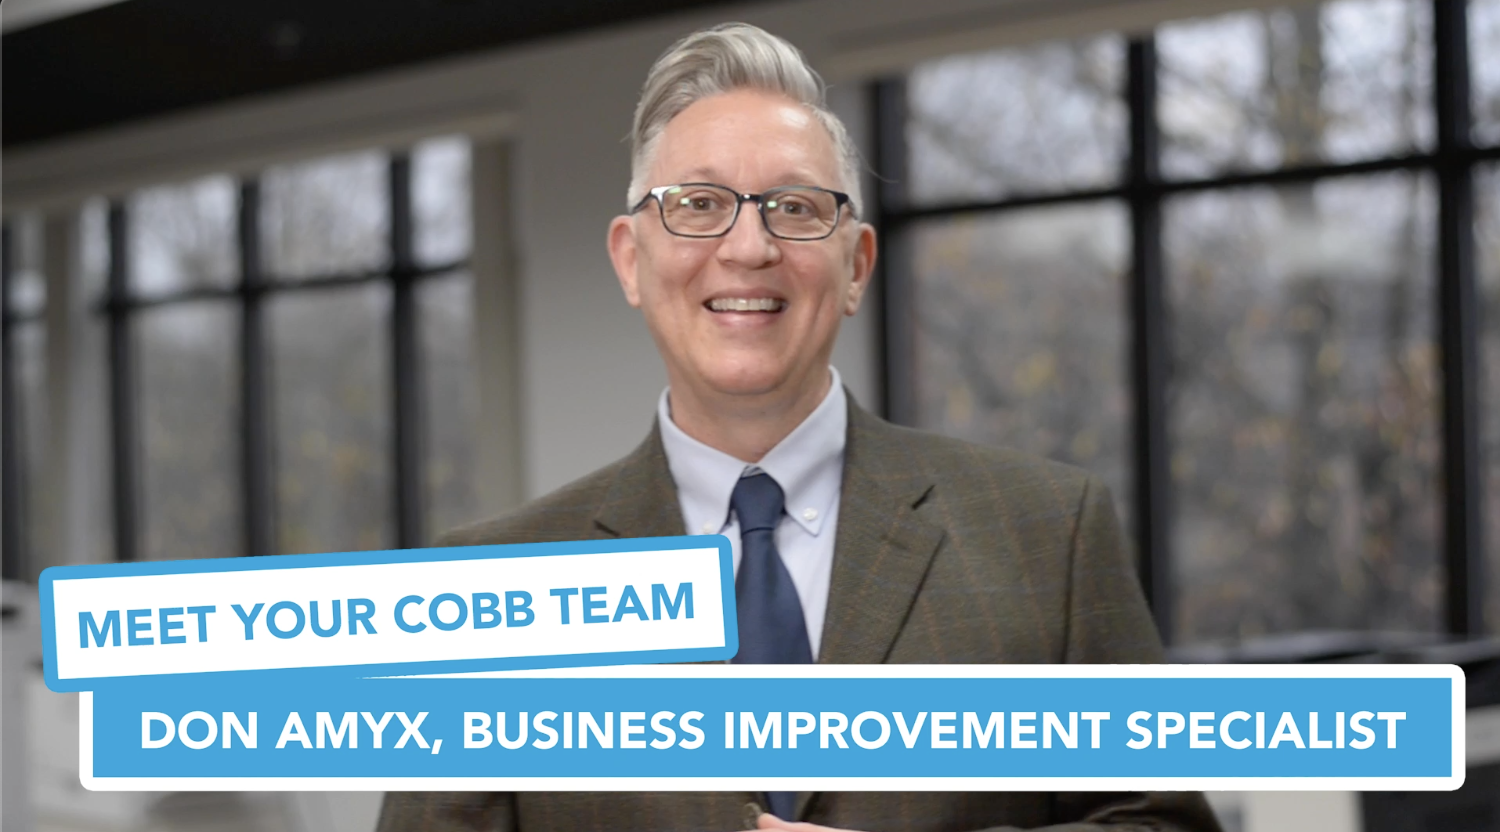 Meet Your Cobb Team Don Amyx, Business Improvement Specialist